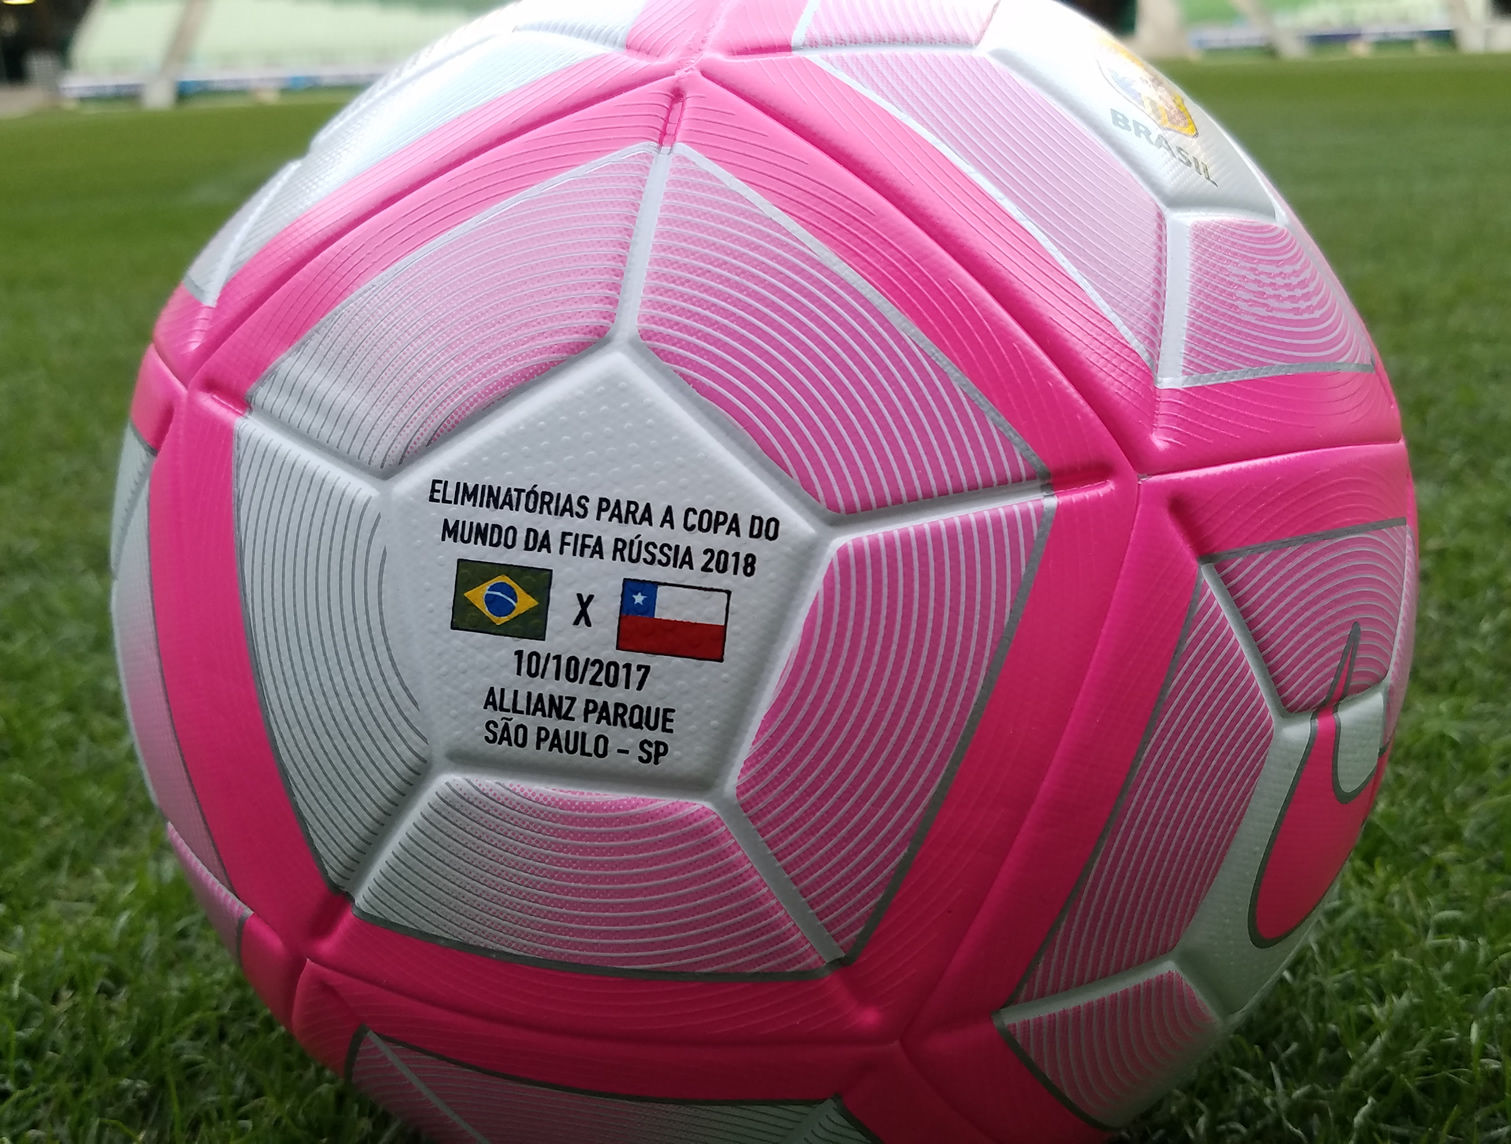 Balls 17-18 by Goh125 - Telstar 18 Mechta - Page 7 Special-pink-nike-ordem-ball%2B%25284%2529